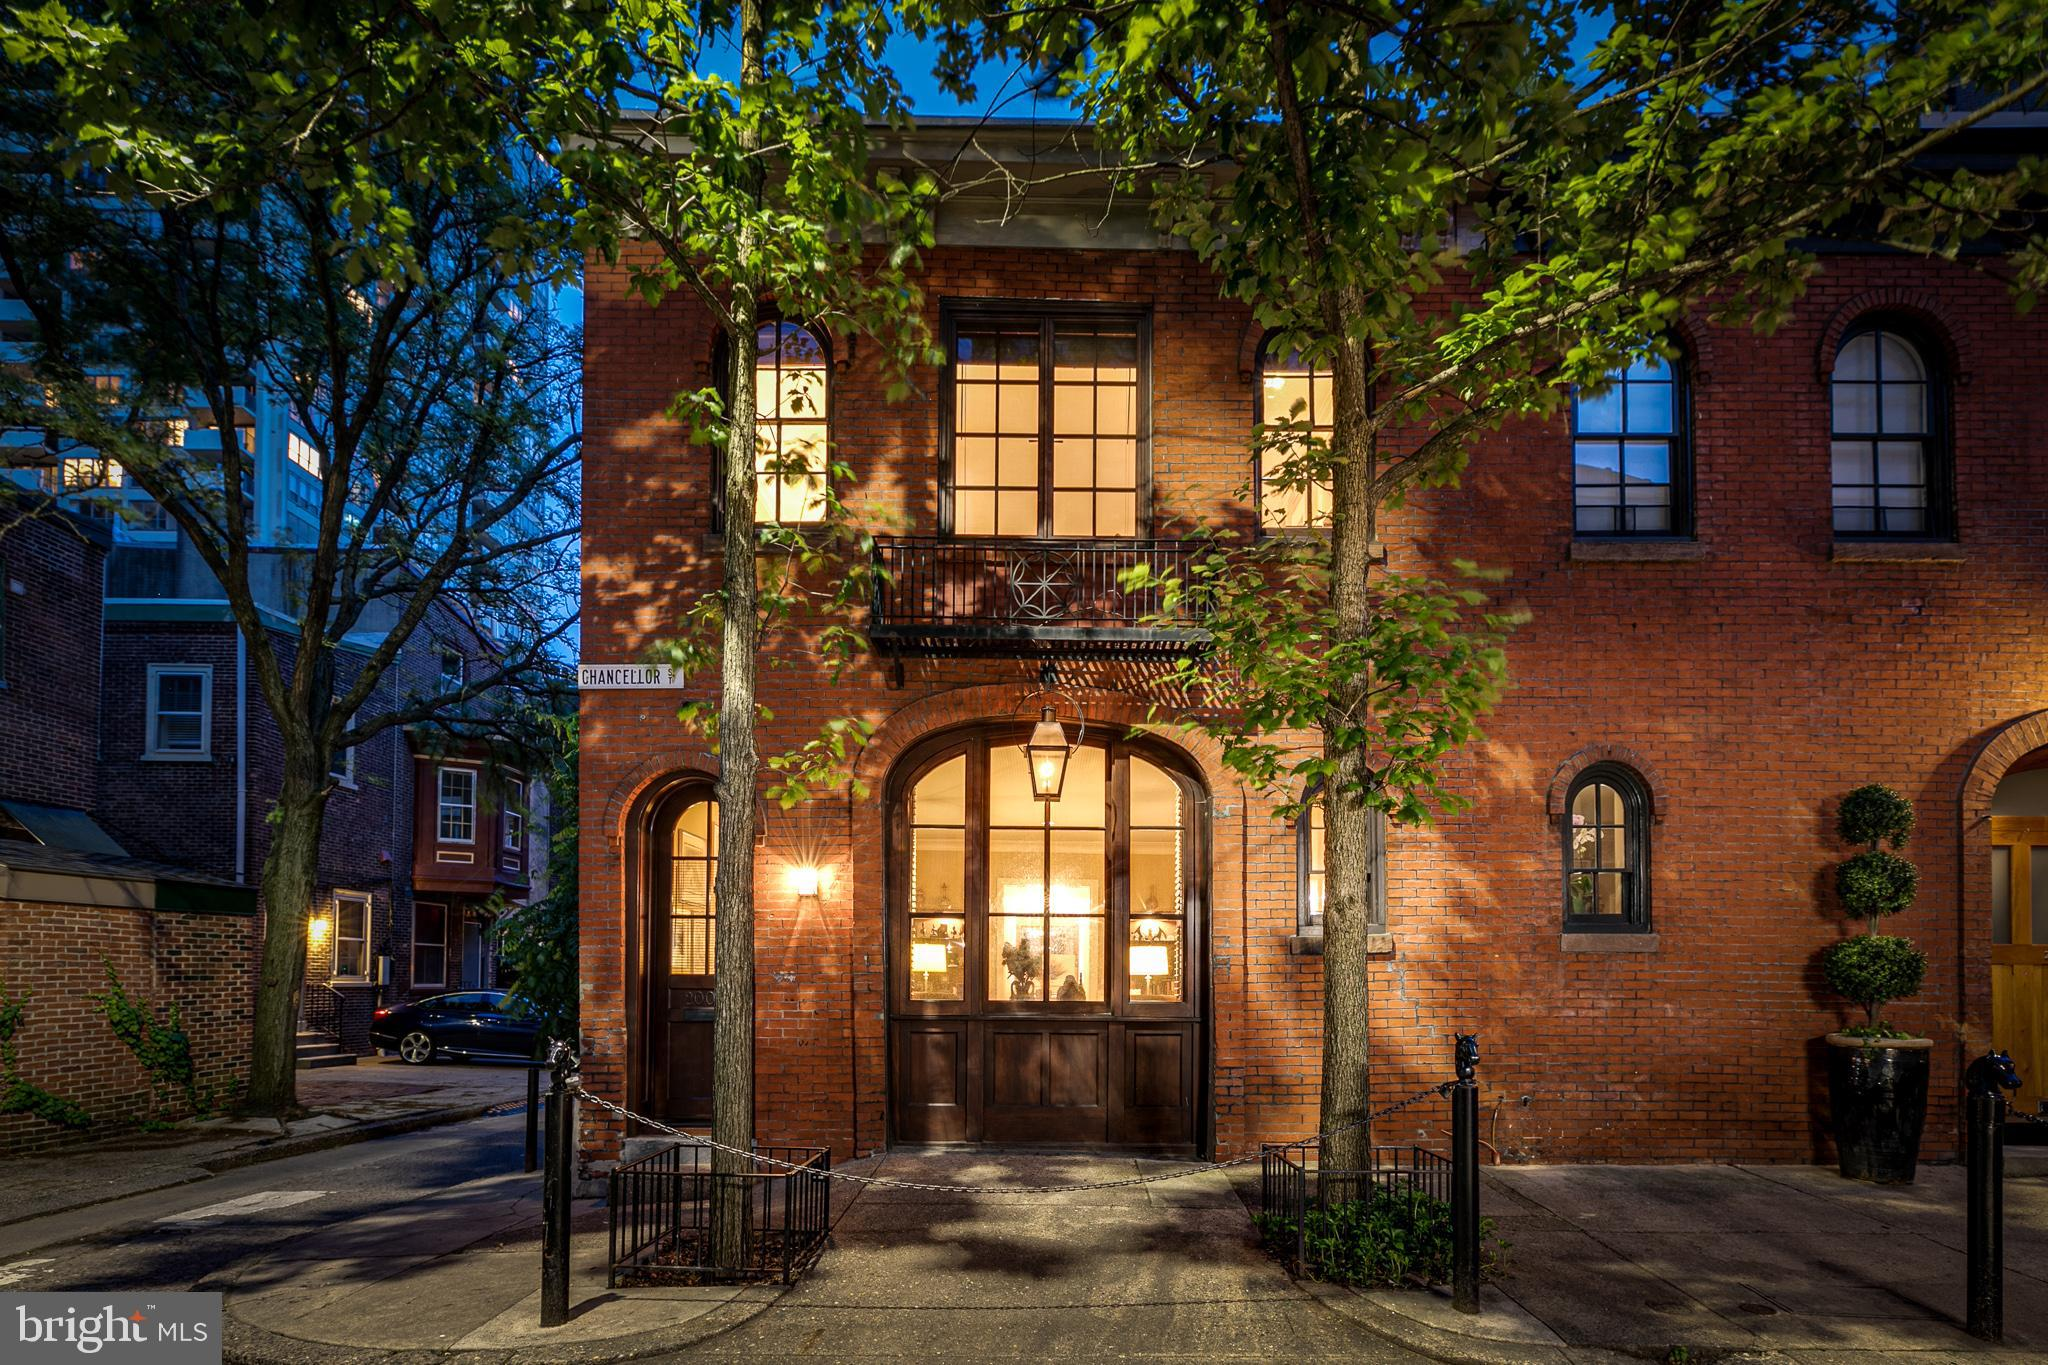 There's something about a carriage house that is particularly fascinating; it might be the arched doorways, brick facades, or the fact that they belong to an entirely different era. This 2400 sq ft corner Carriage House... Uniquely Philadelphia... Contemporary Architectural Design... Open Floor Plan... is a dramatic 2 bedroom plus den home unlike any other. From the striking landmarked mahogany multi-windowed façade of dark wood and old brick to the light-filled differently defined levels for living, this carriage house will excite just crossing the threshold.  On the entry-level is an open living and dining with fantastic handmade moldings and a fireplace. The center hall features wood floors from Bologna with a sleek steel and wood staircase. Adjacent there is a full laundry room and powder room. Walk into the windowed cook's kitchen with amazing storage and eat-in dining. The beamed ceiling is original to the carriage house and there are double mahogany doors that lead to the rear of the property. Up one flight to the den/library sit and relax with your favorite book and a cafe. This level features the primary suite with walled bookcases, walk-in closet and en-suite bath with water closet. There is a 2nd bedroom also with an en-suite bath and a walk-in closet. Then it is up to the beautifully decked and planted roof garden. Traversing the center of the carriage house is a skylight that brings in magical light day and night. Located on the most desired Chancellor Street in the heart of Rittenhouse Square, one of the most sought after  Rittenhouse brownstone neighborhoods, you are near shopping and world-famous museums plus fine food purveyors, and an electrifying array of restaurants and bars. Words do not capture this unique and dramatic home so to really appreciate it you must see it yourself!